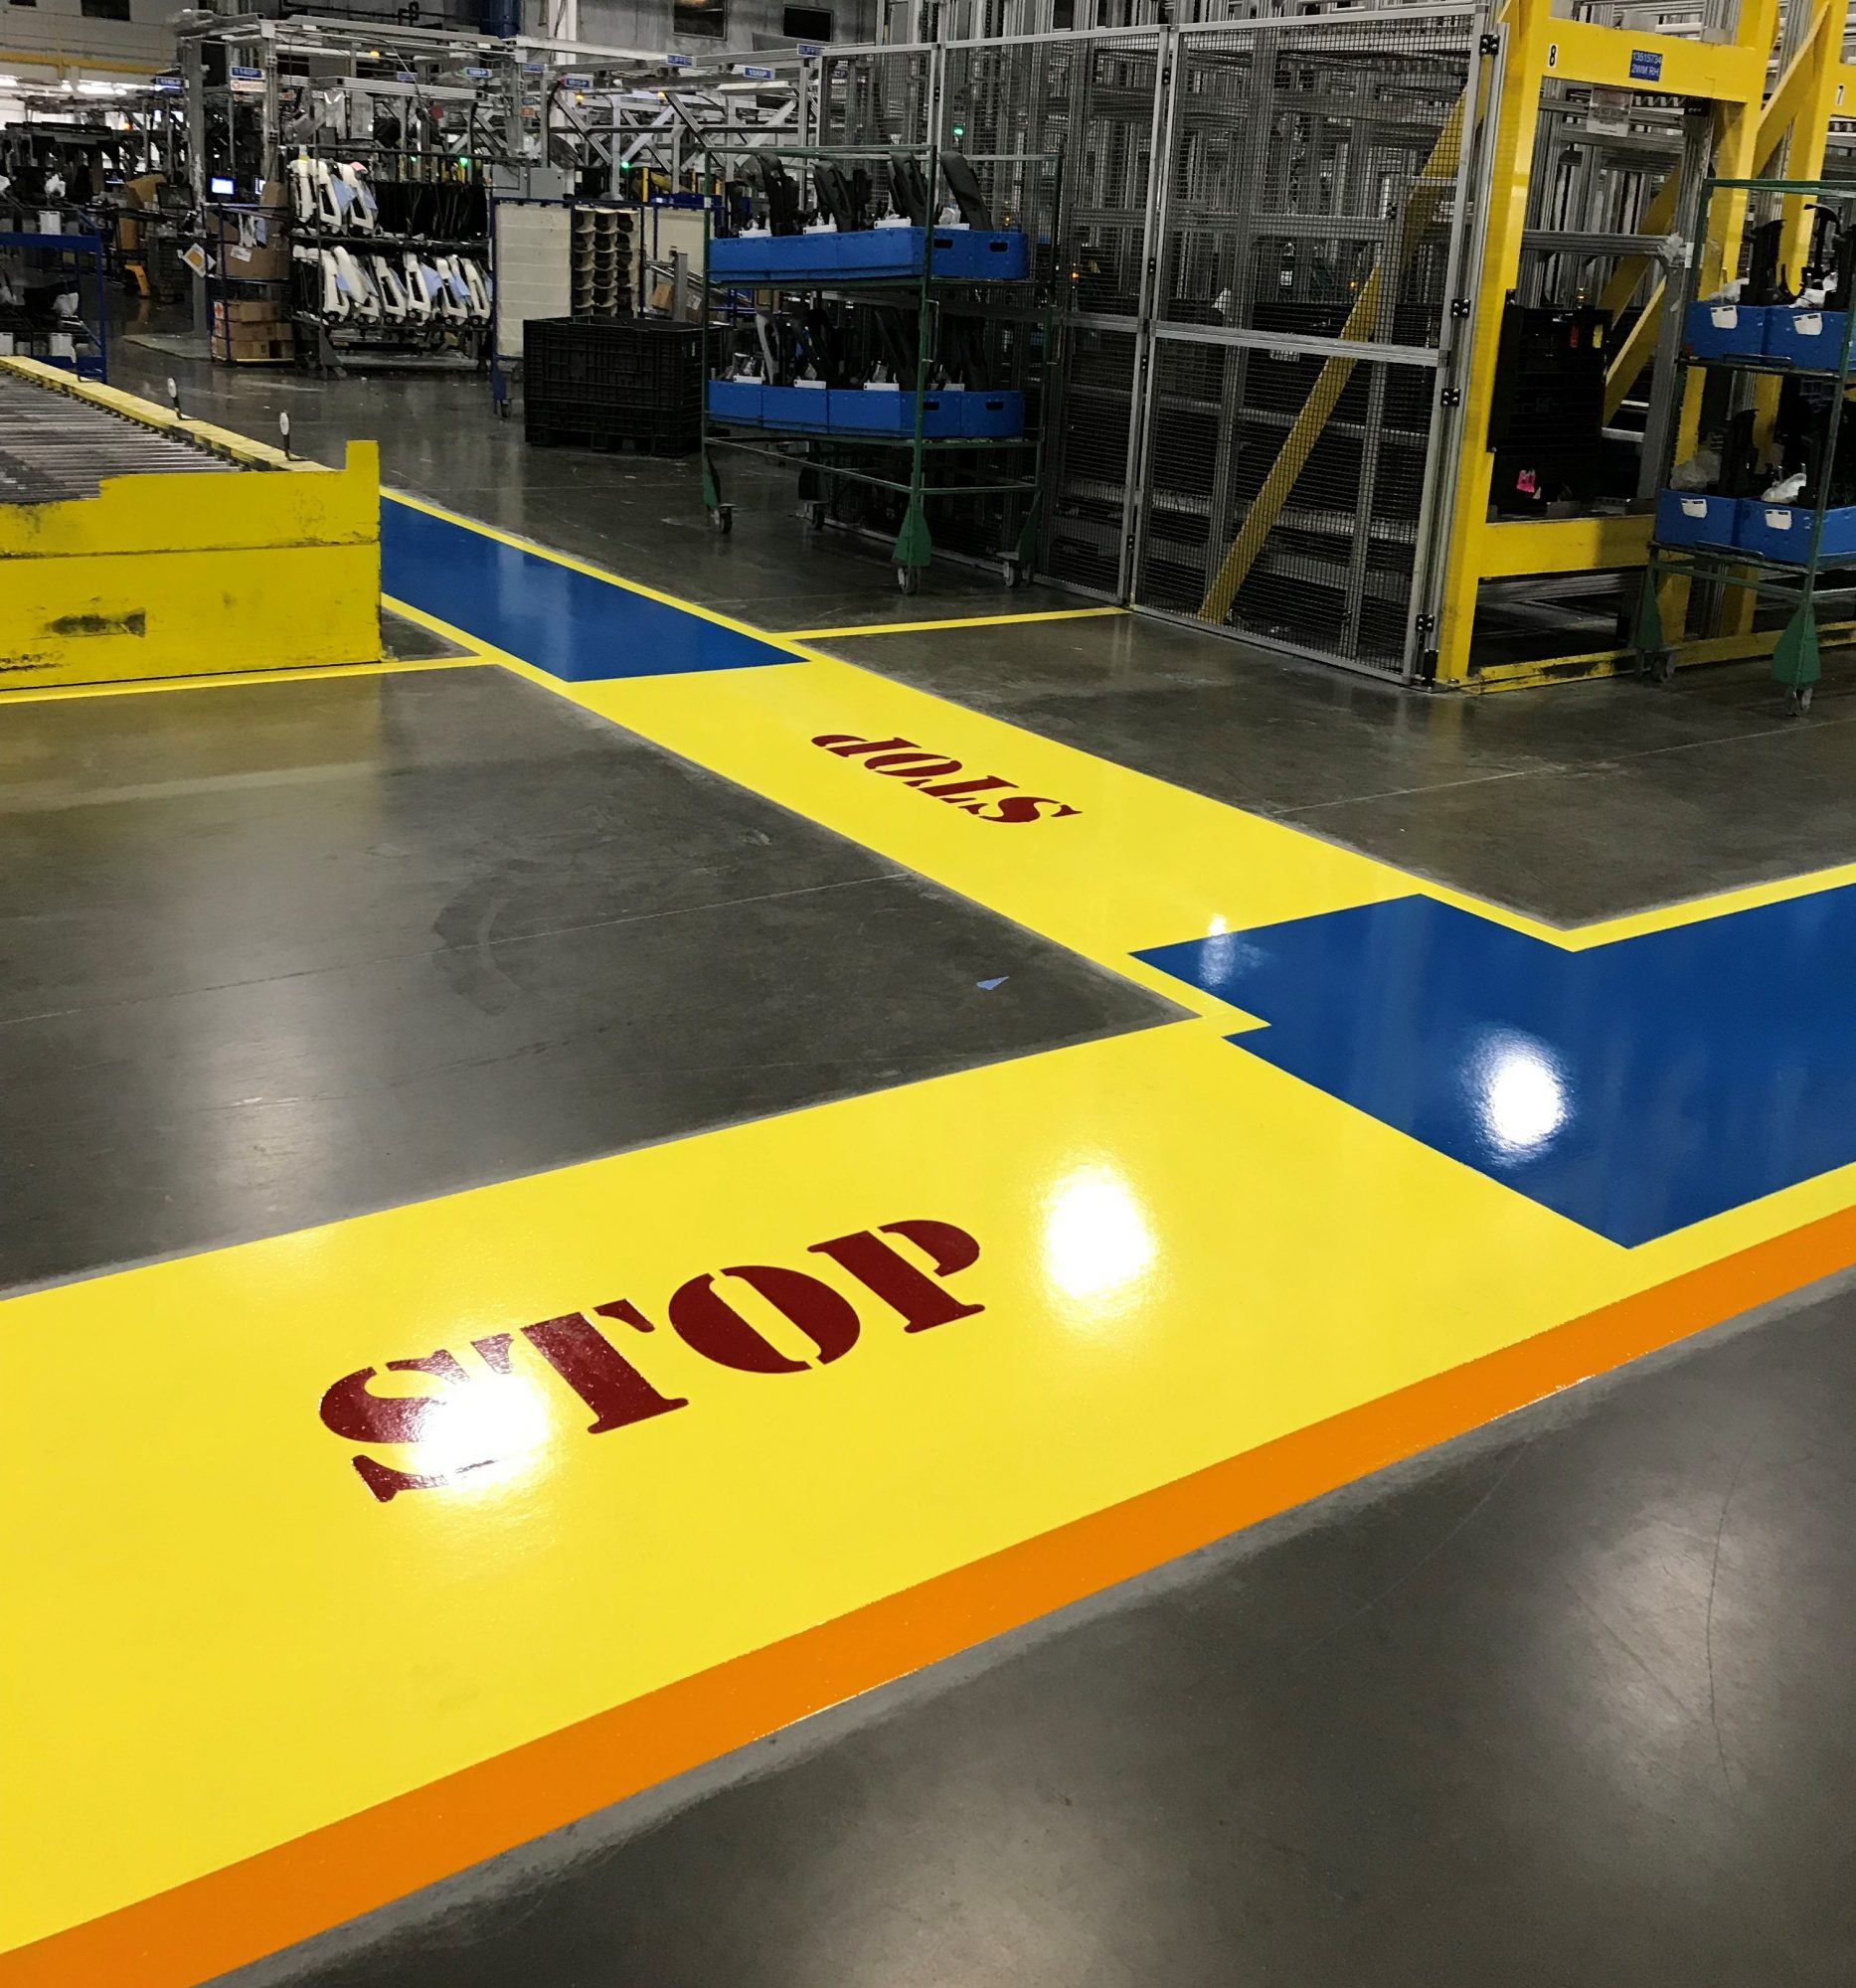 safety striping, 5S, epoxy floor coatings, aisle coatings, epoxy coatings